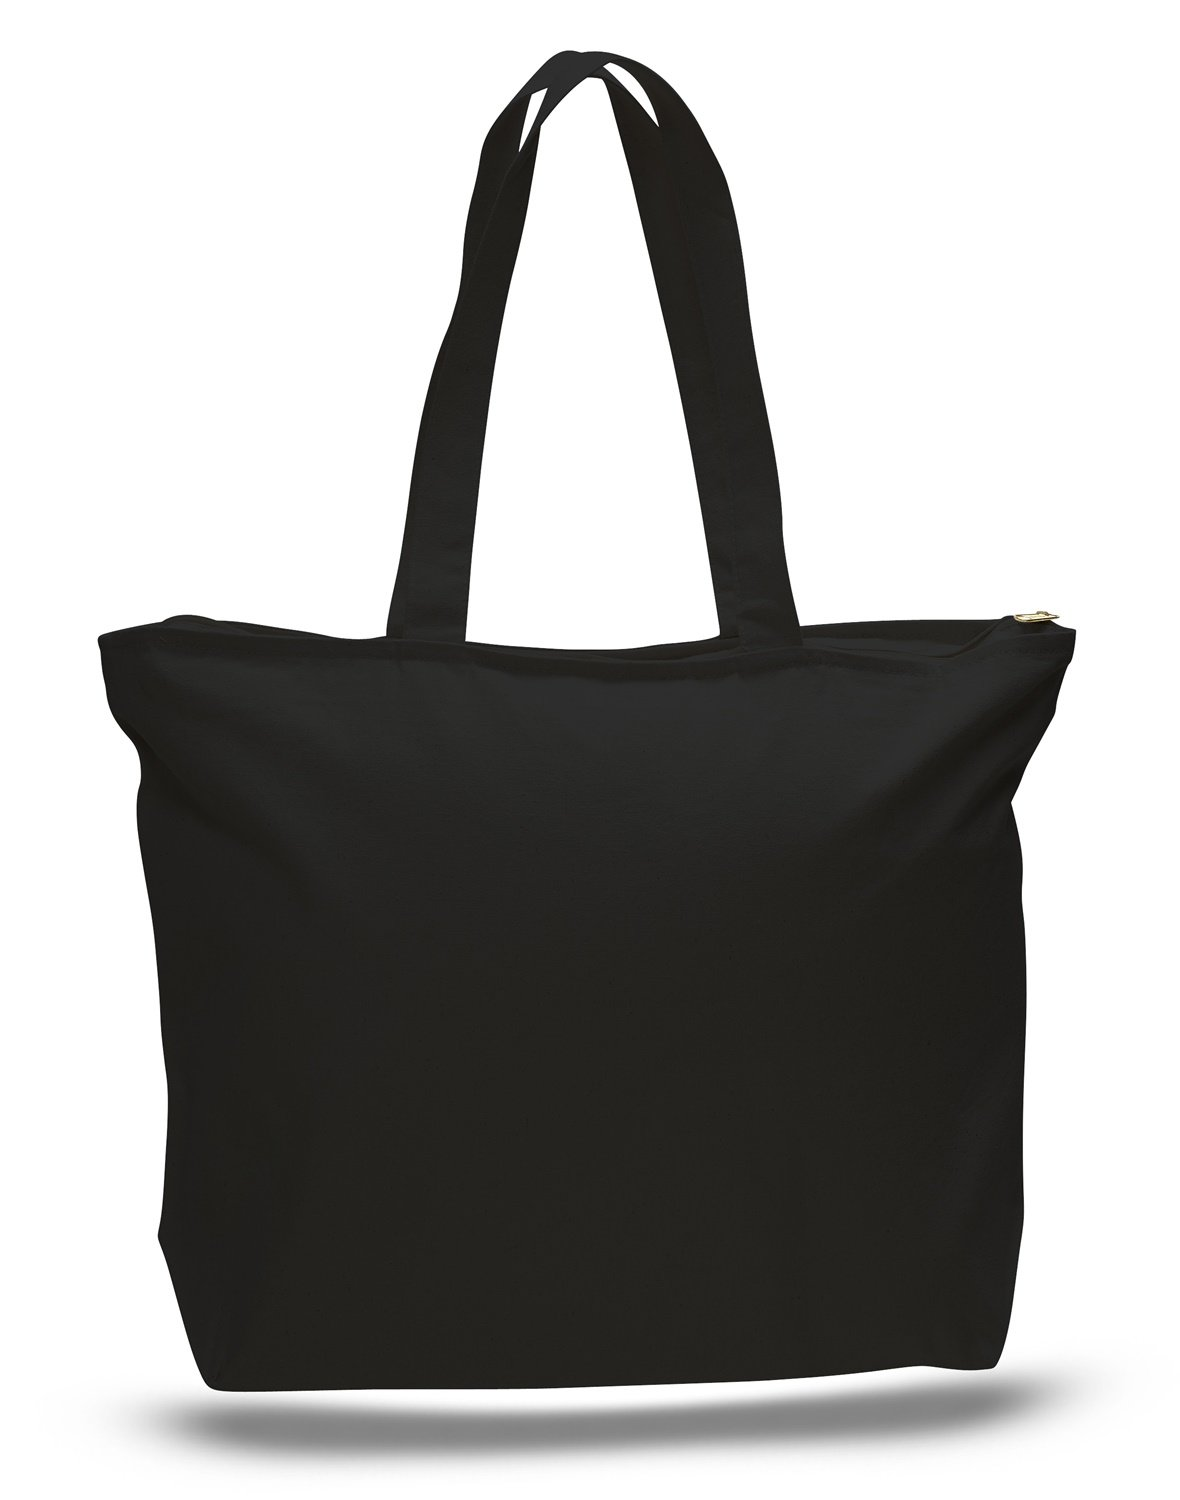 be0b7454e Amazon.com: Heavy Canvas Large Tote Bag with Zippered Closure (Black):  Industrial & Scientific